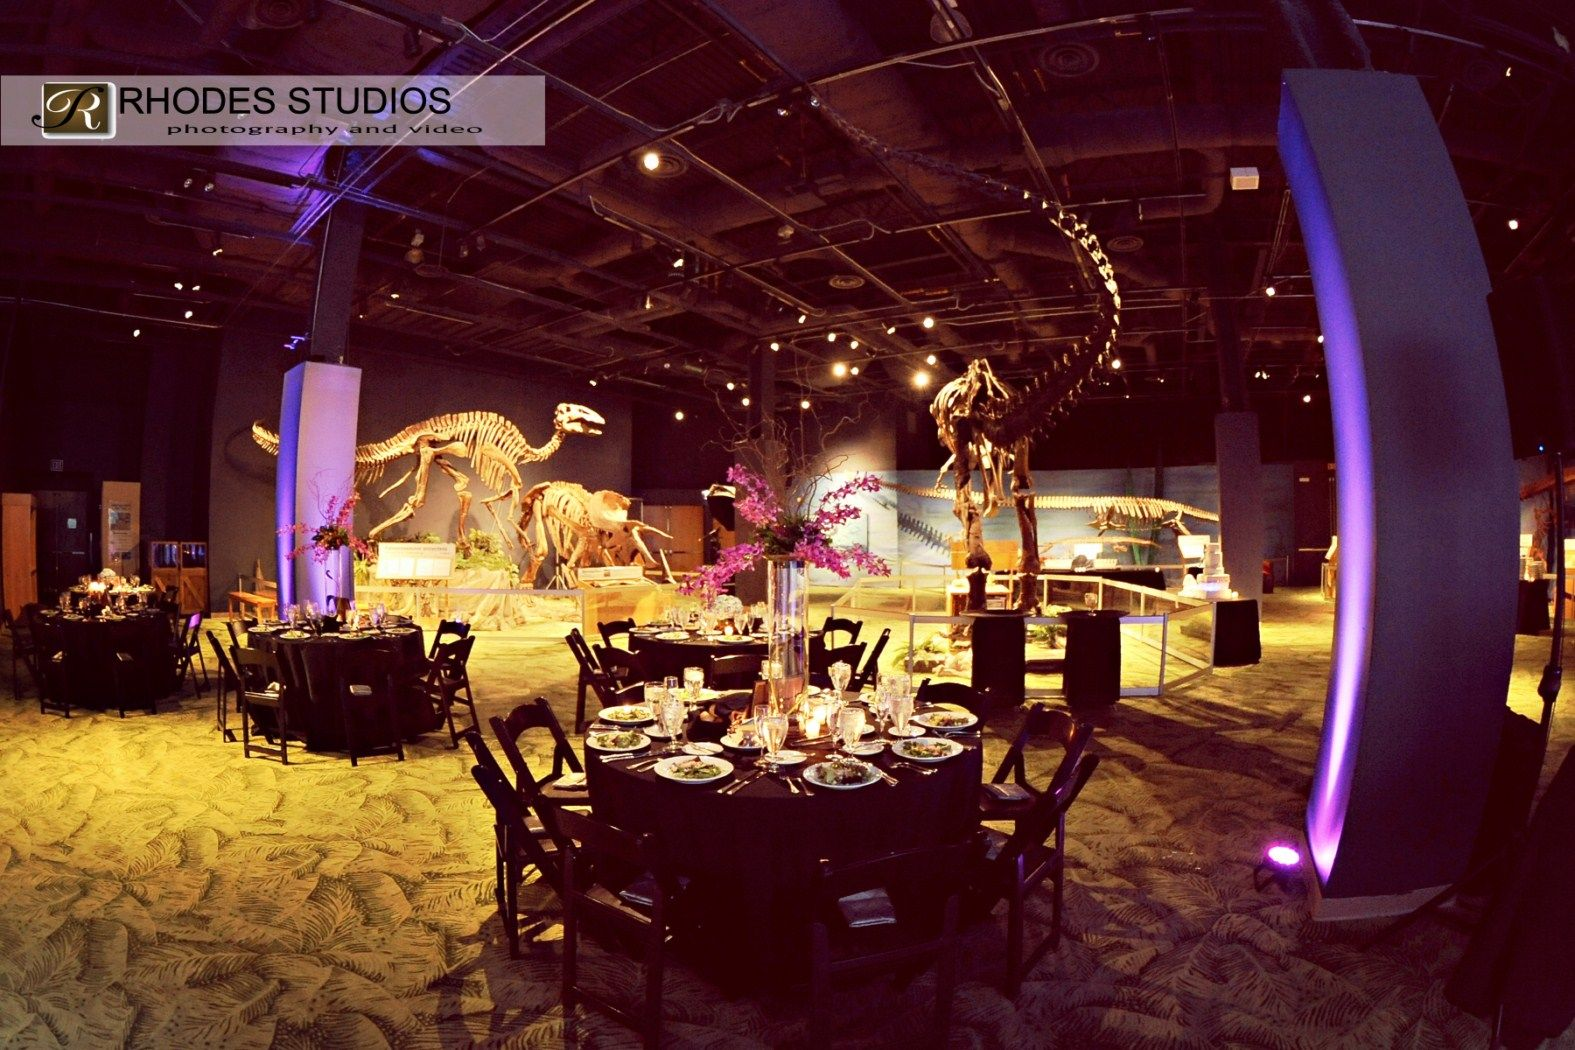 Orlando Wedding Dj Our Rocks Science Center Rhodes Studios Photography